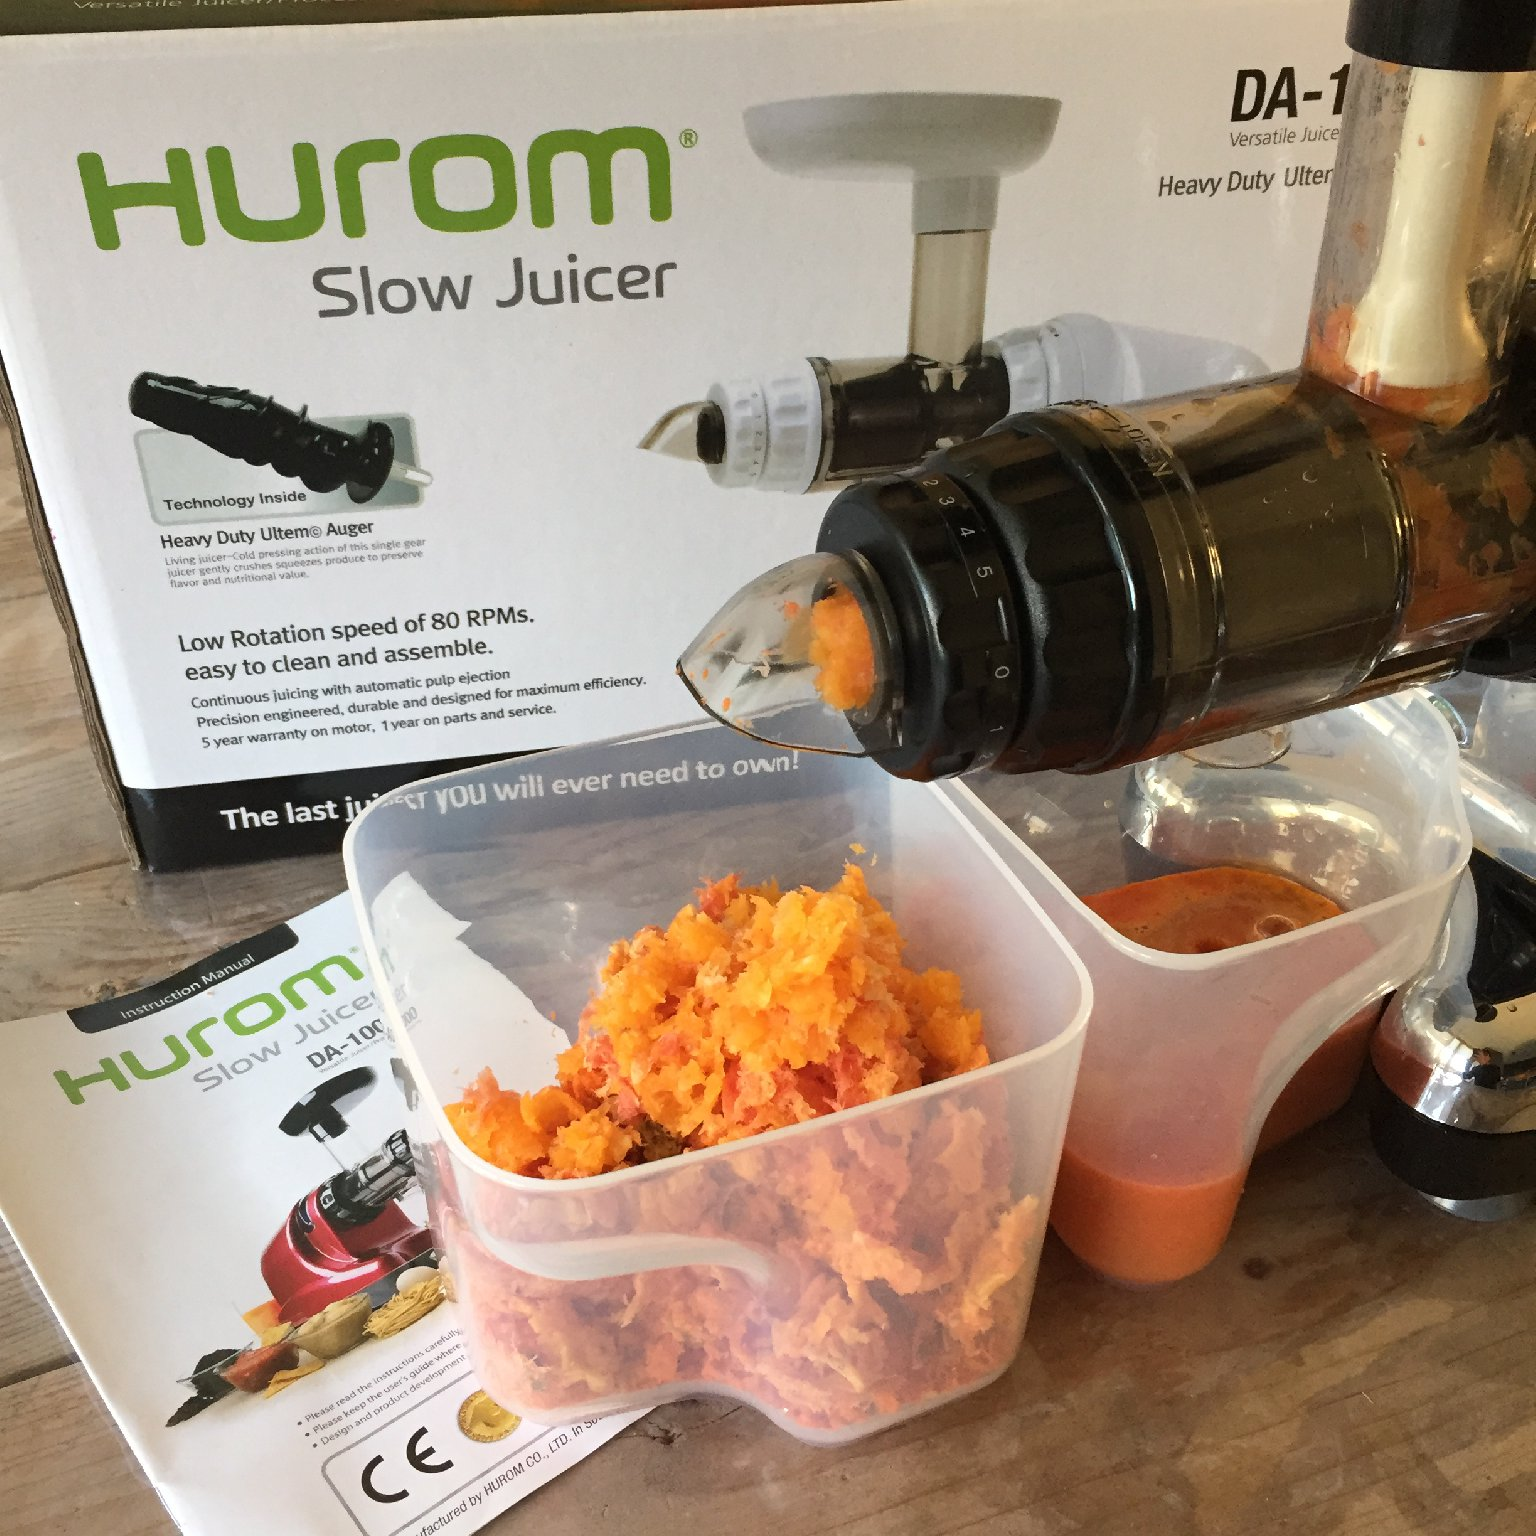 Hurom Slow Juicer Test : Foodilove test Hurom Slowjuicer - FOOD I LOvE